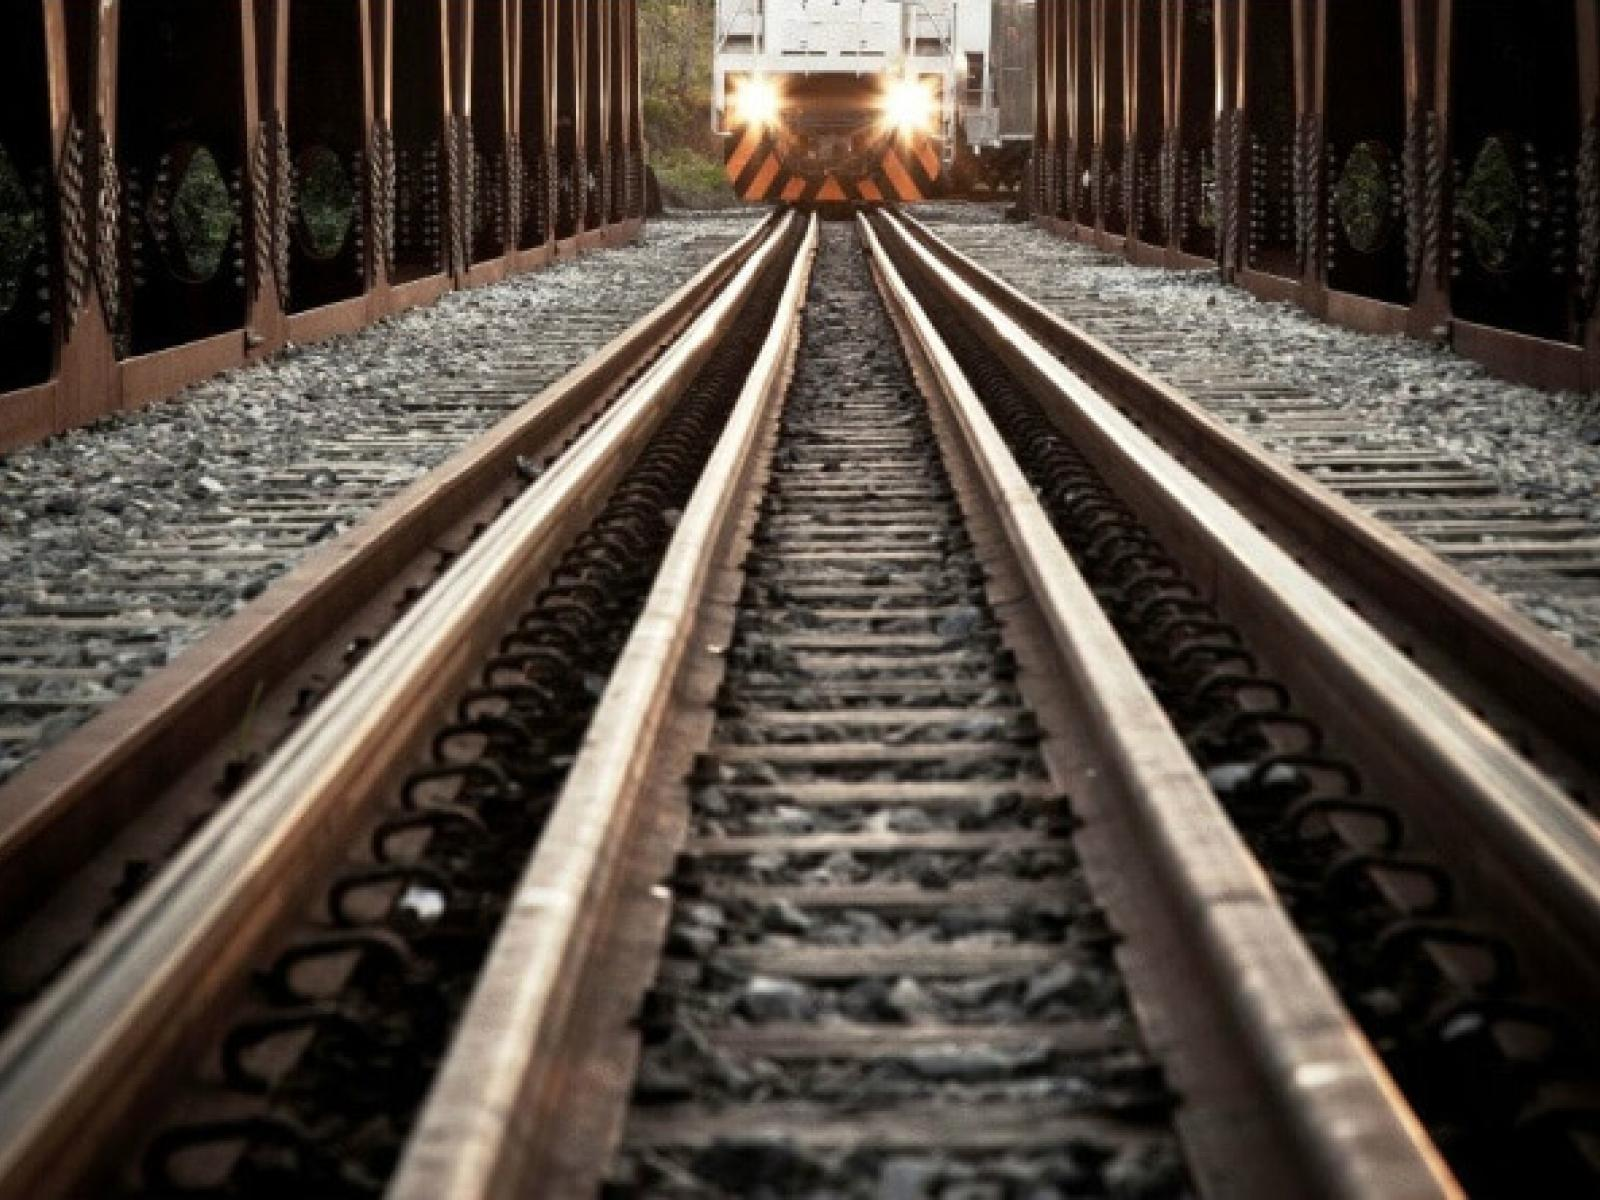 Closeup of railroad tracks with oncoming train in distance